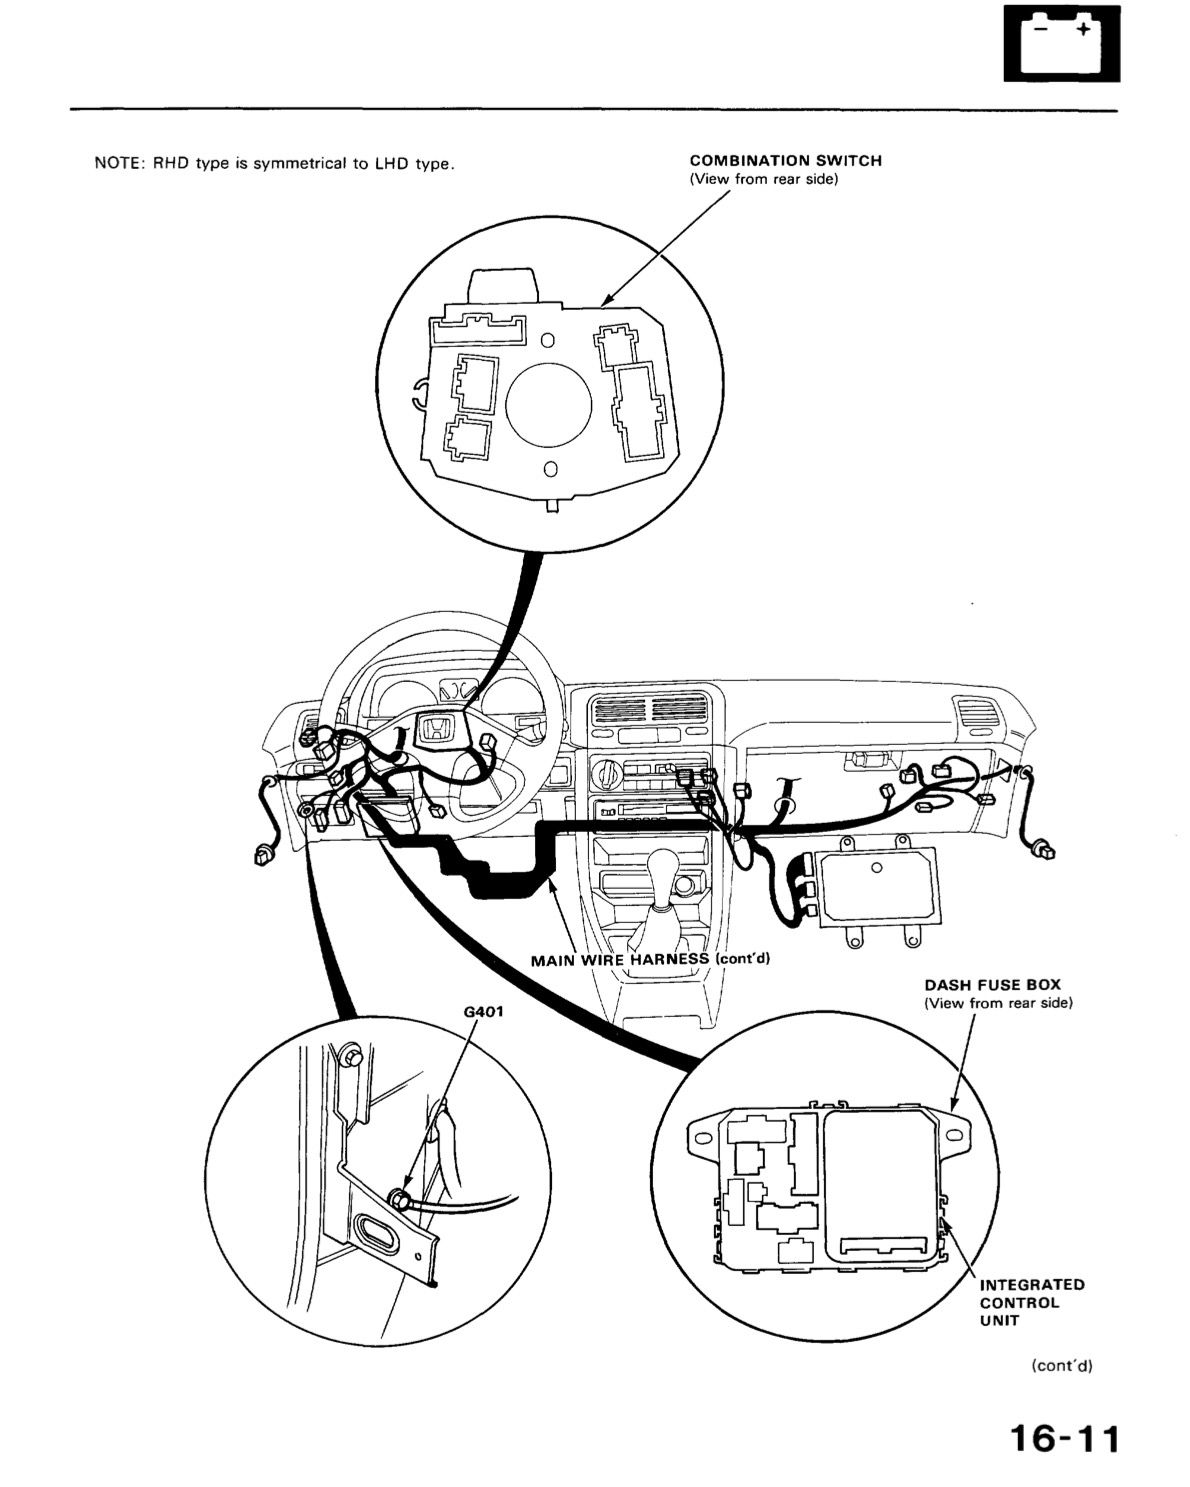 Ground Amp Wire Harness Diagram Media Honda Uk